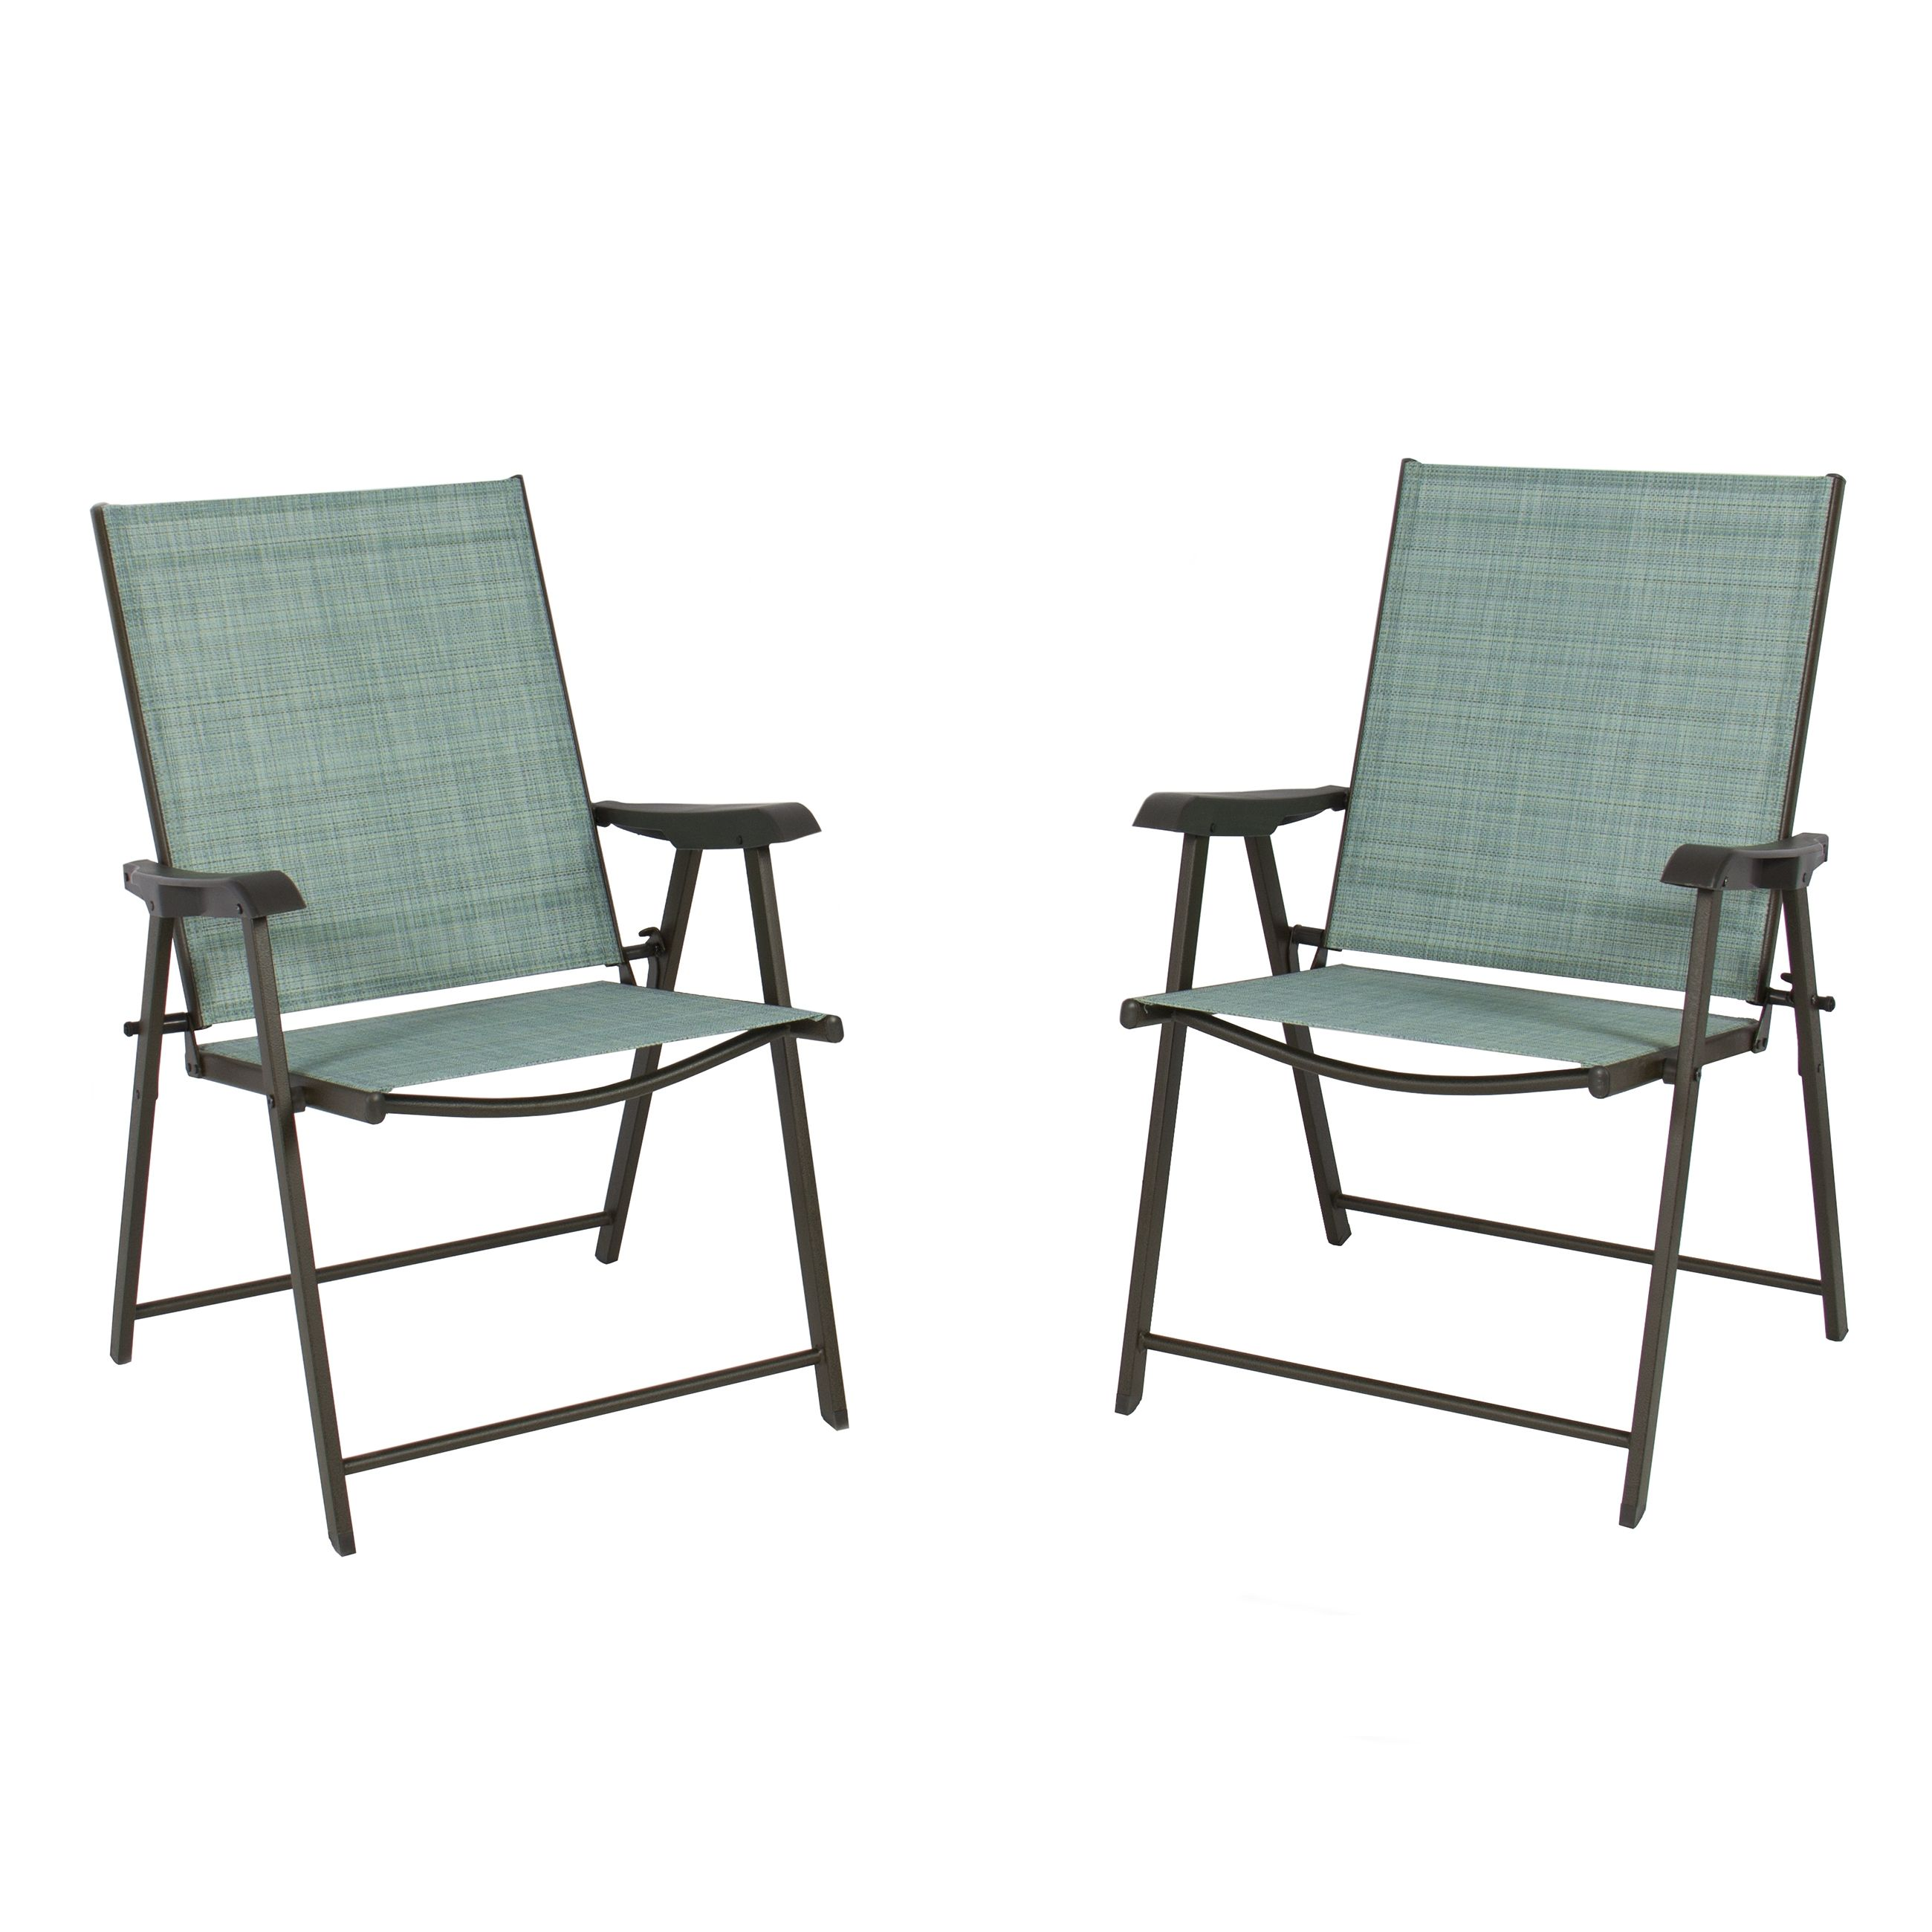 Folding outdoor chairs jeremyeatonart pinterest